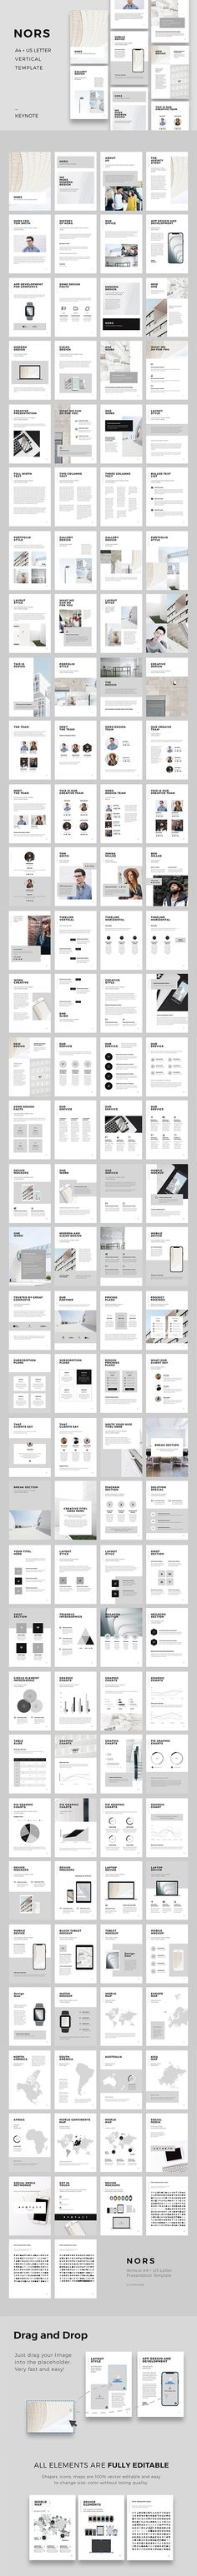 NORS A4 US Letter Vertical Keynote Template — Keynote KEY #device #key • Available here ➝ https://graphicriver.net/item/nors-a4-us-letter-vertical-keynote-template/20648223?ref=pxcr